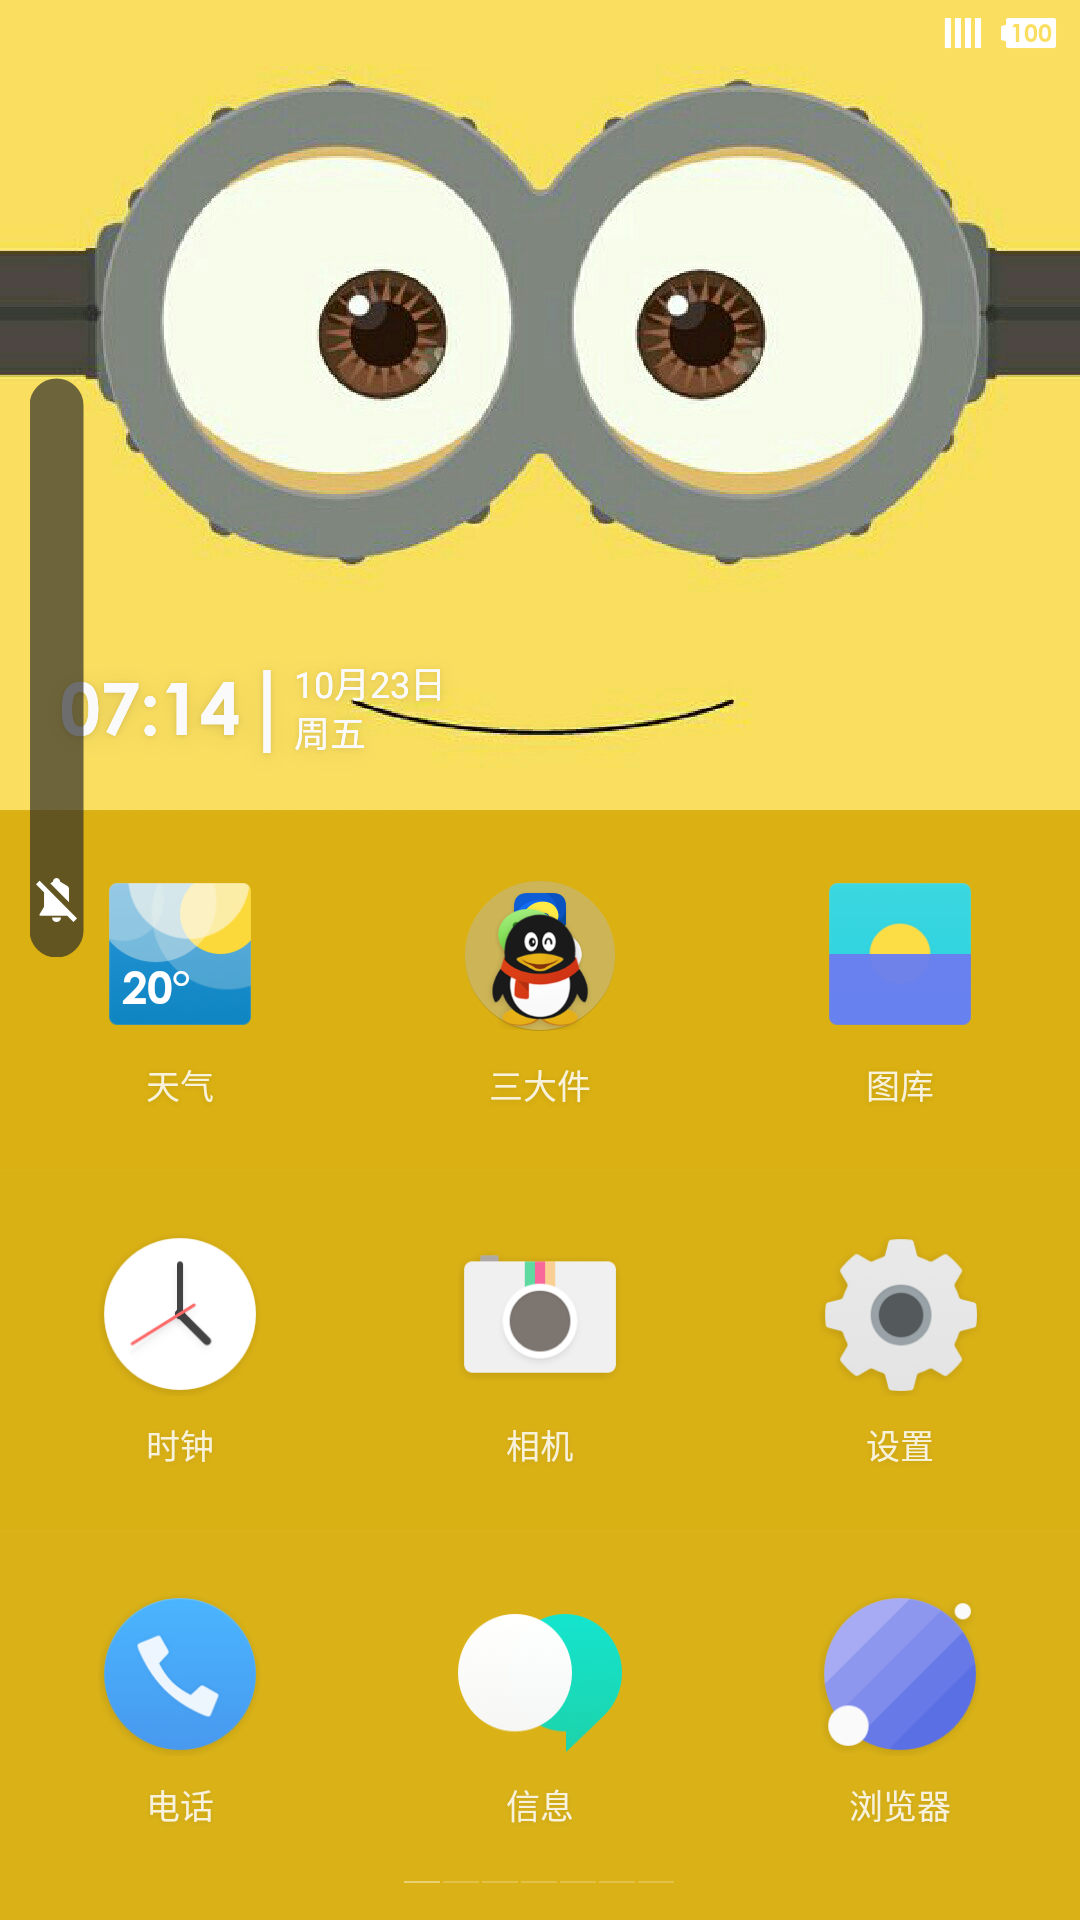 Screenshot_2015-10-23-07-14-38.png